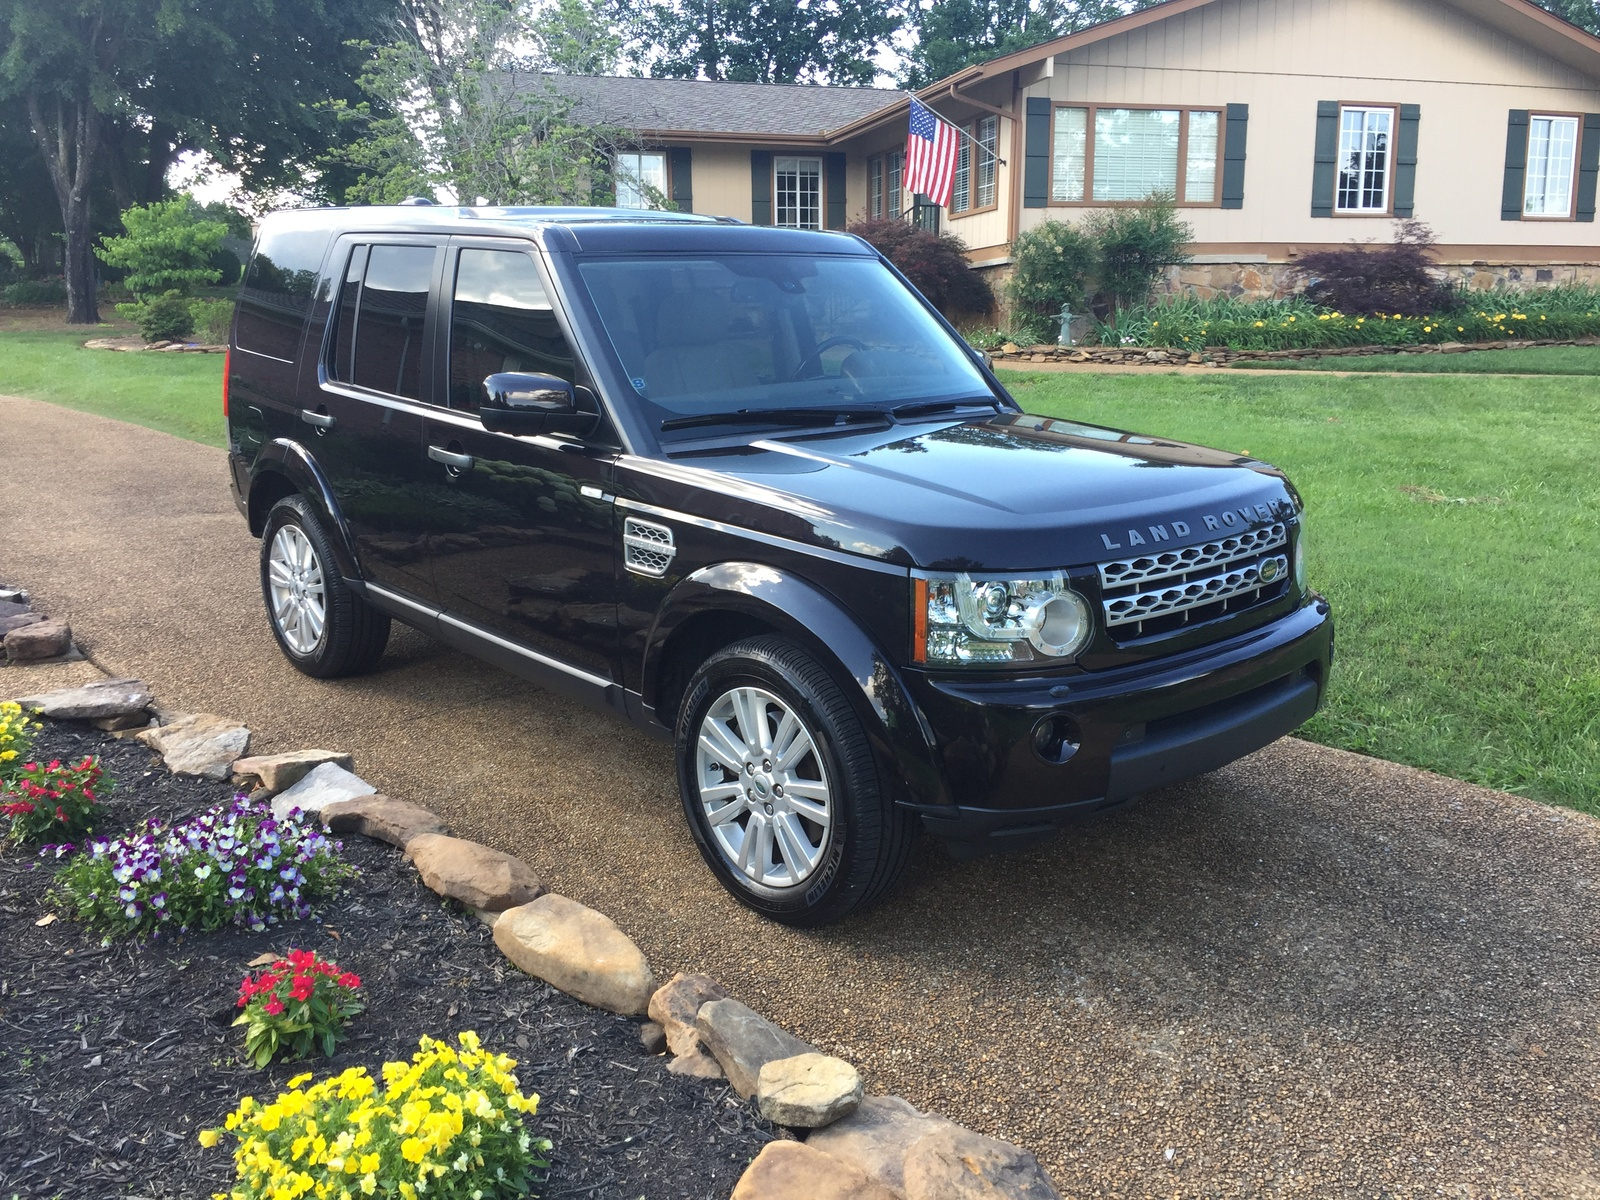 landrover sale stock in ca land photo details vehicle orange county for rover suv fountain valley